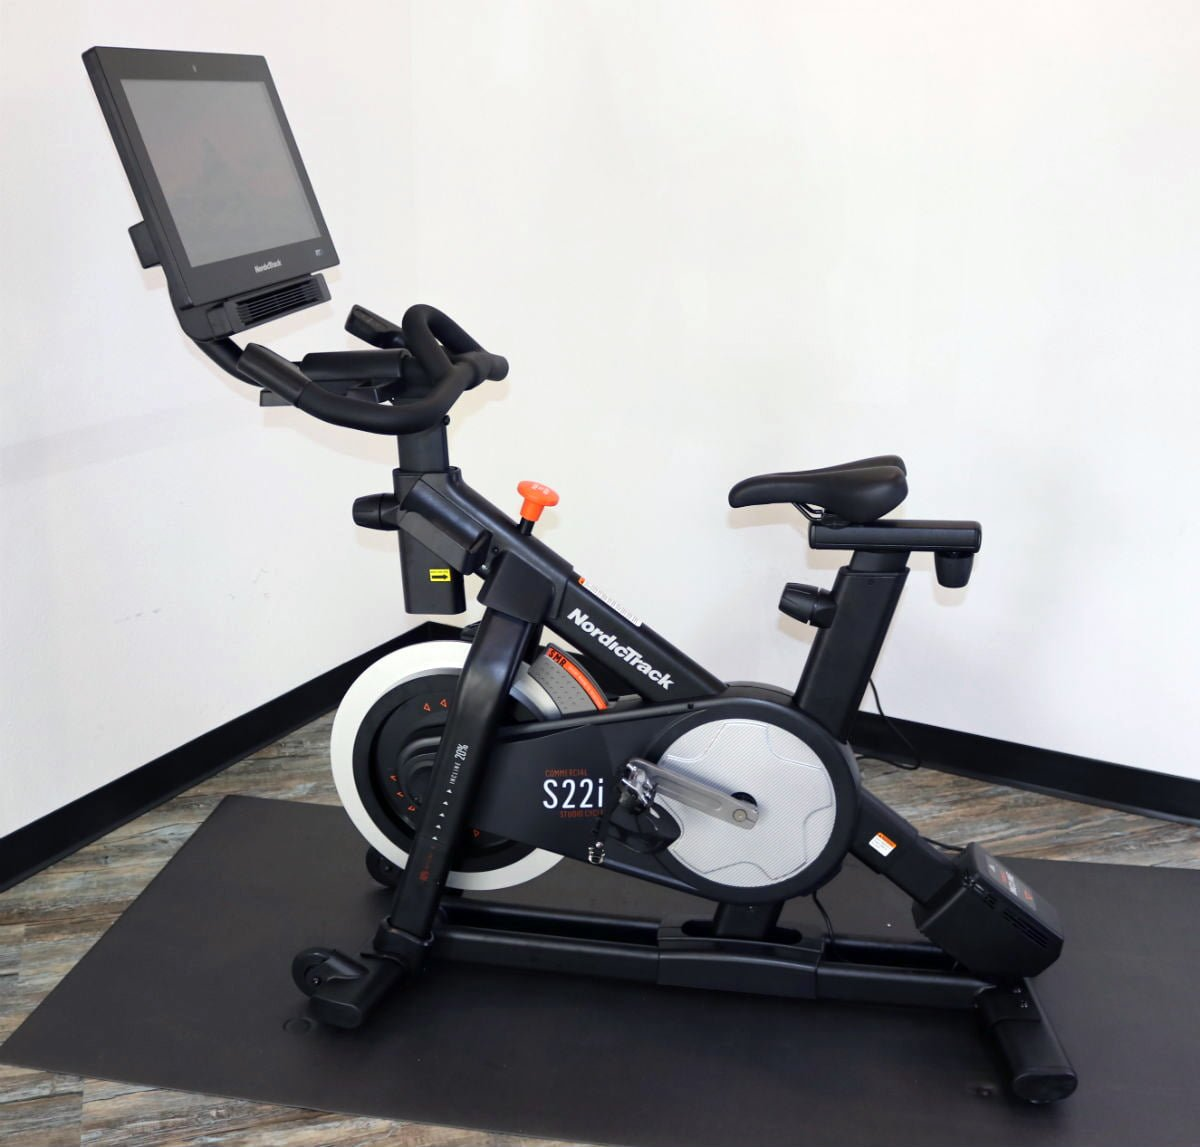 NordicTrack S22i Review